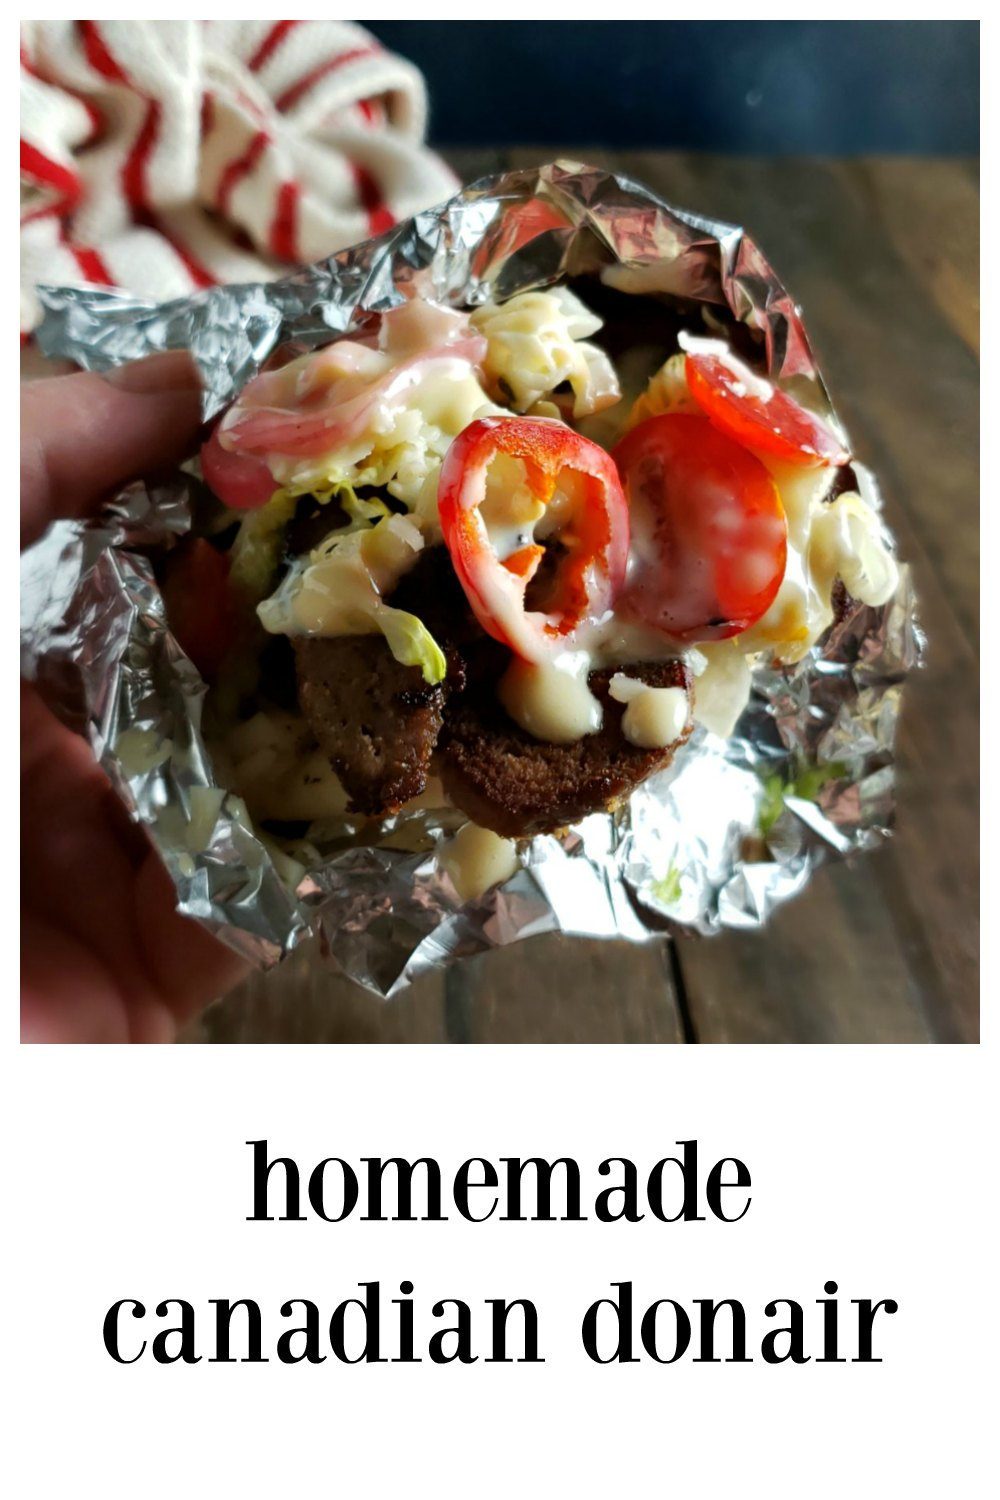 Homemade Canadian Donair - don't confuse this spicier pita type sandwich with a Gyro! It may be a cousin but is in a class by itself. That sauce makes it! You'll love the easy method for making professional tasting meat at home! #HomemadeDonair #CanadianDonair #HomemadeCanadianDonair #HalifaxDonairRecipe #Gyro